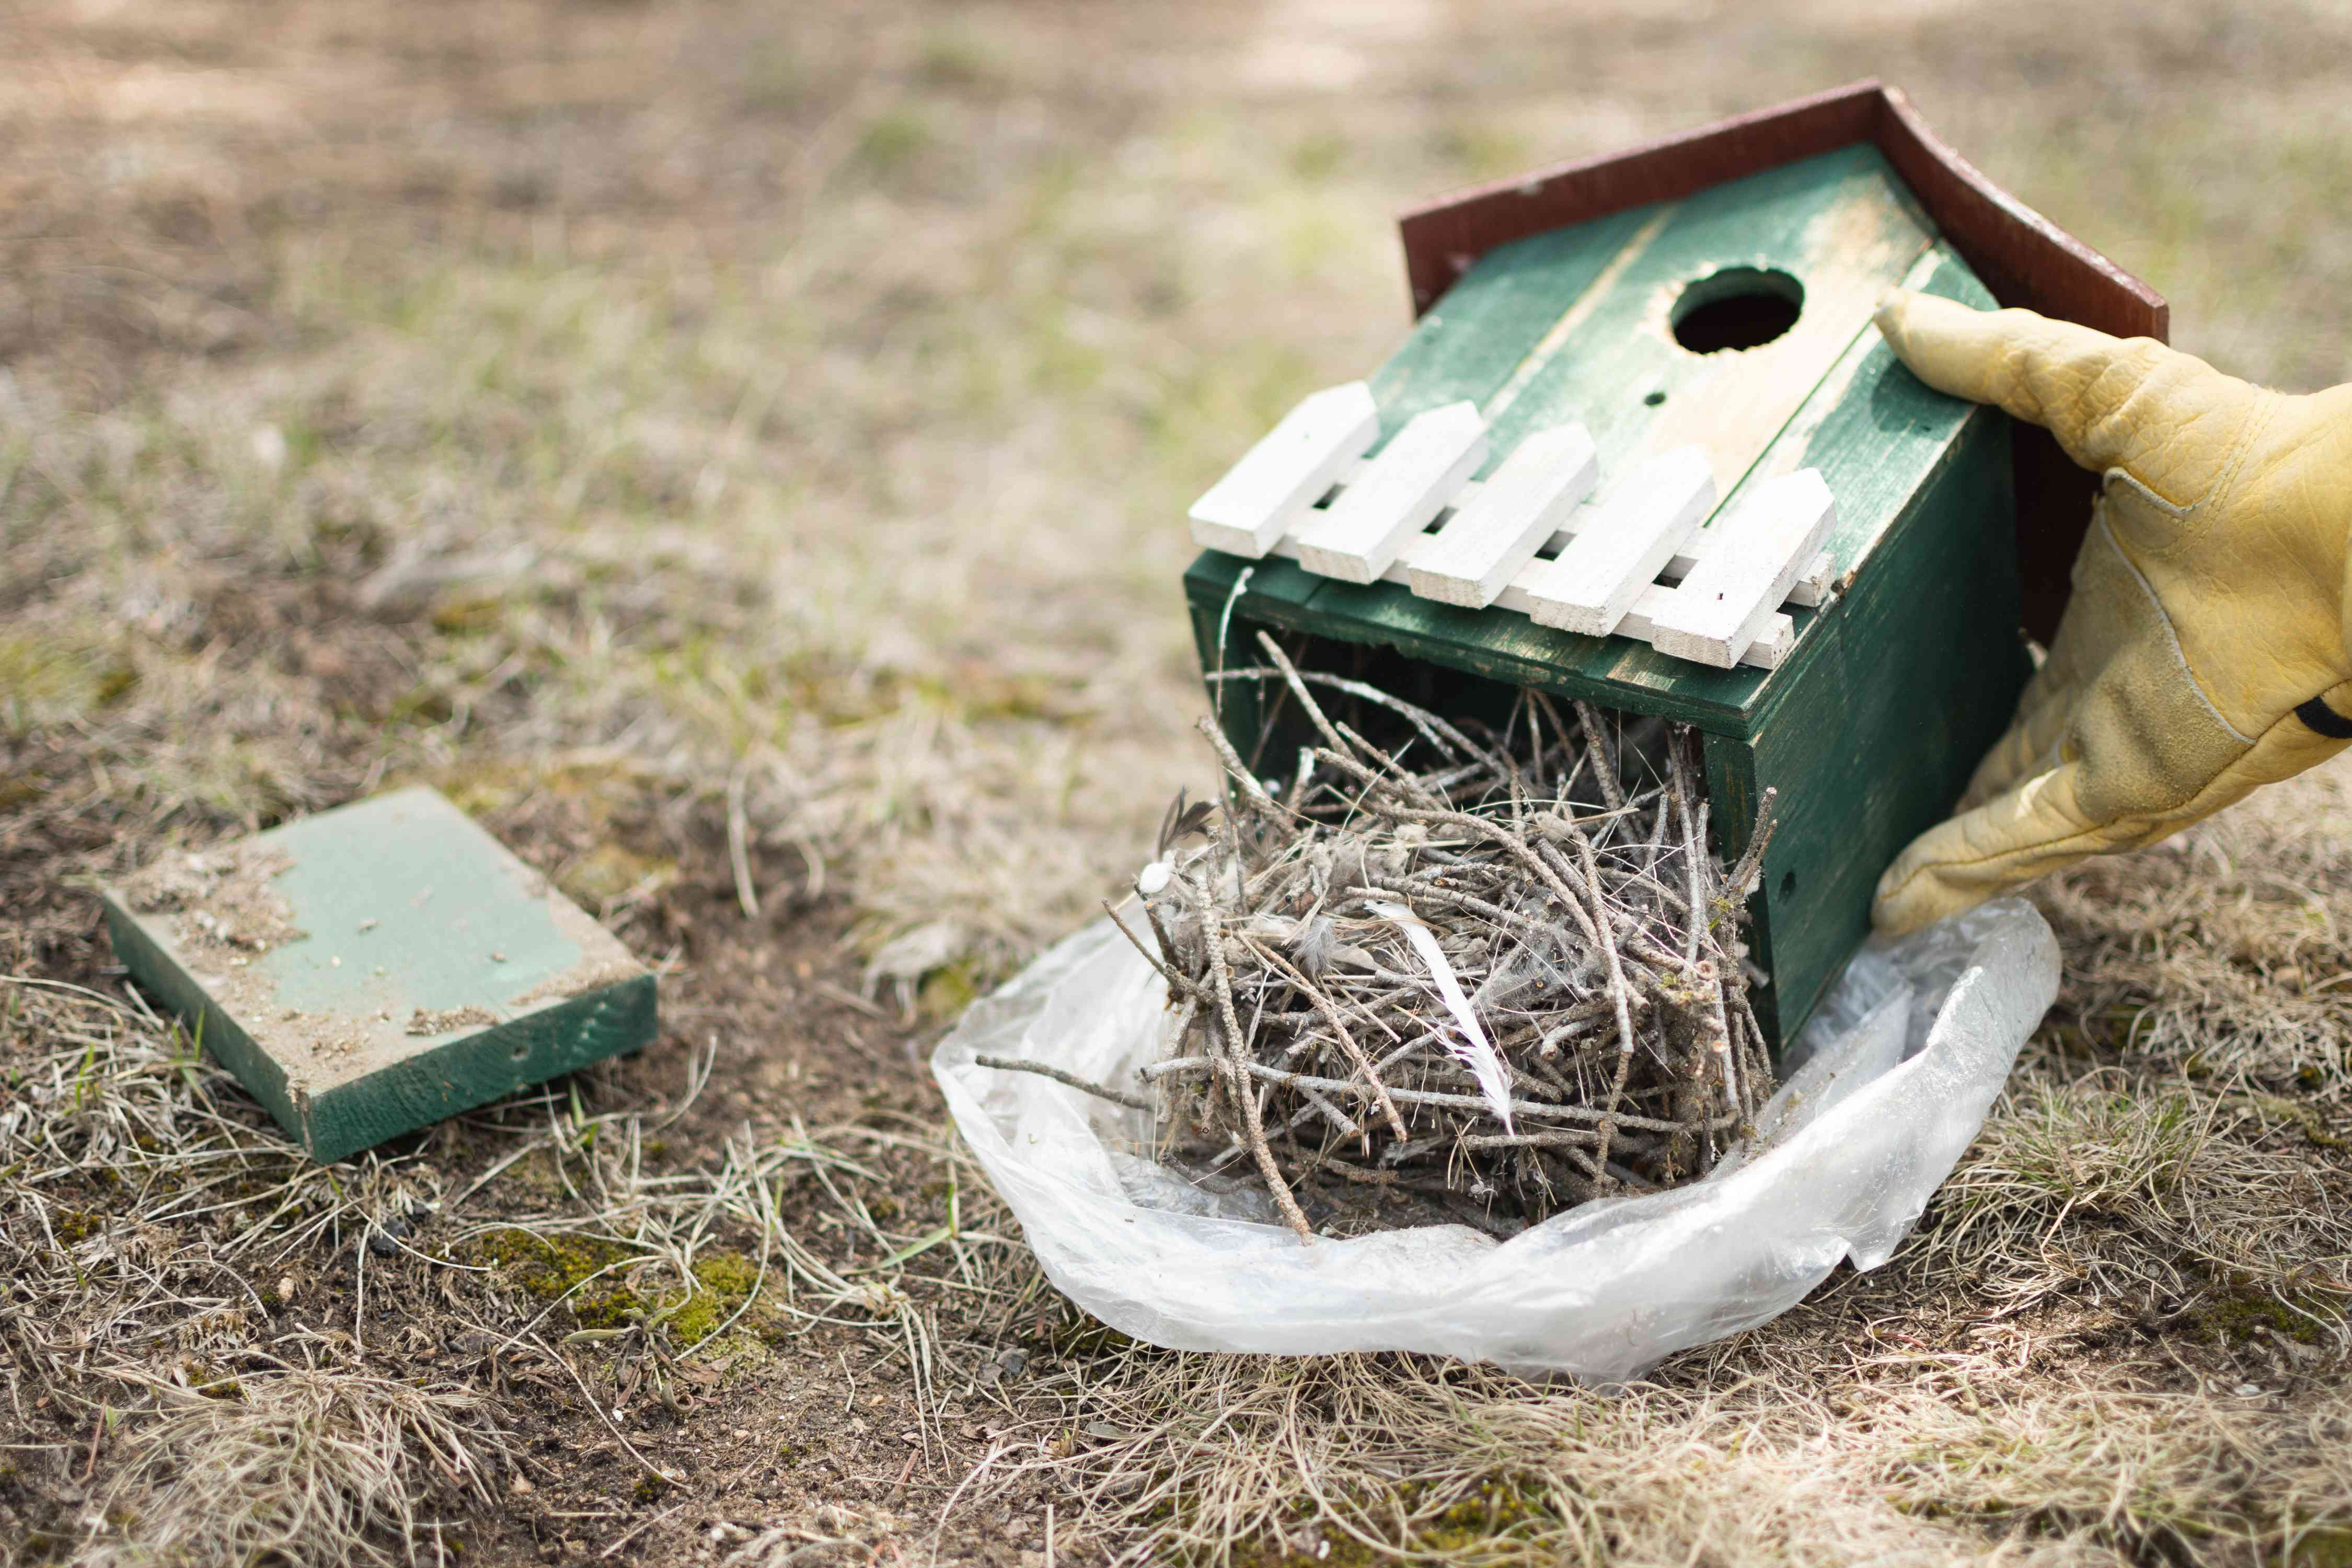 Old nesting material removed from bottom of birdhouse and placed in plastic bag